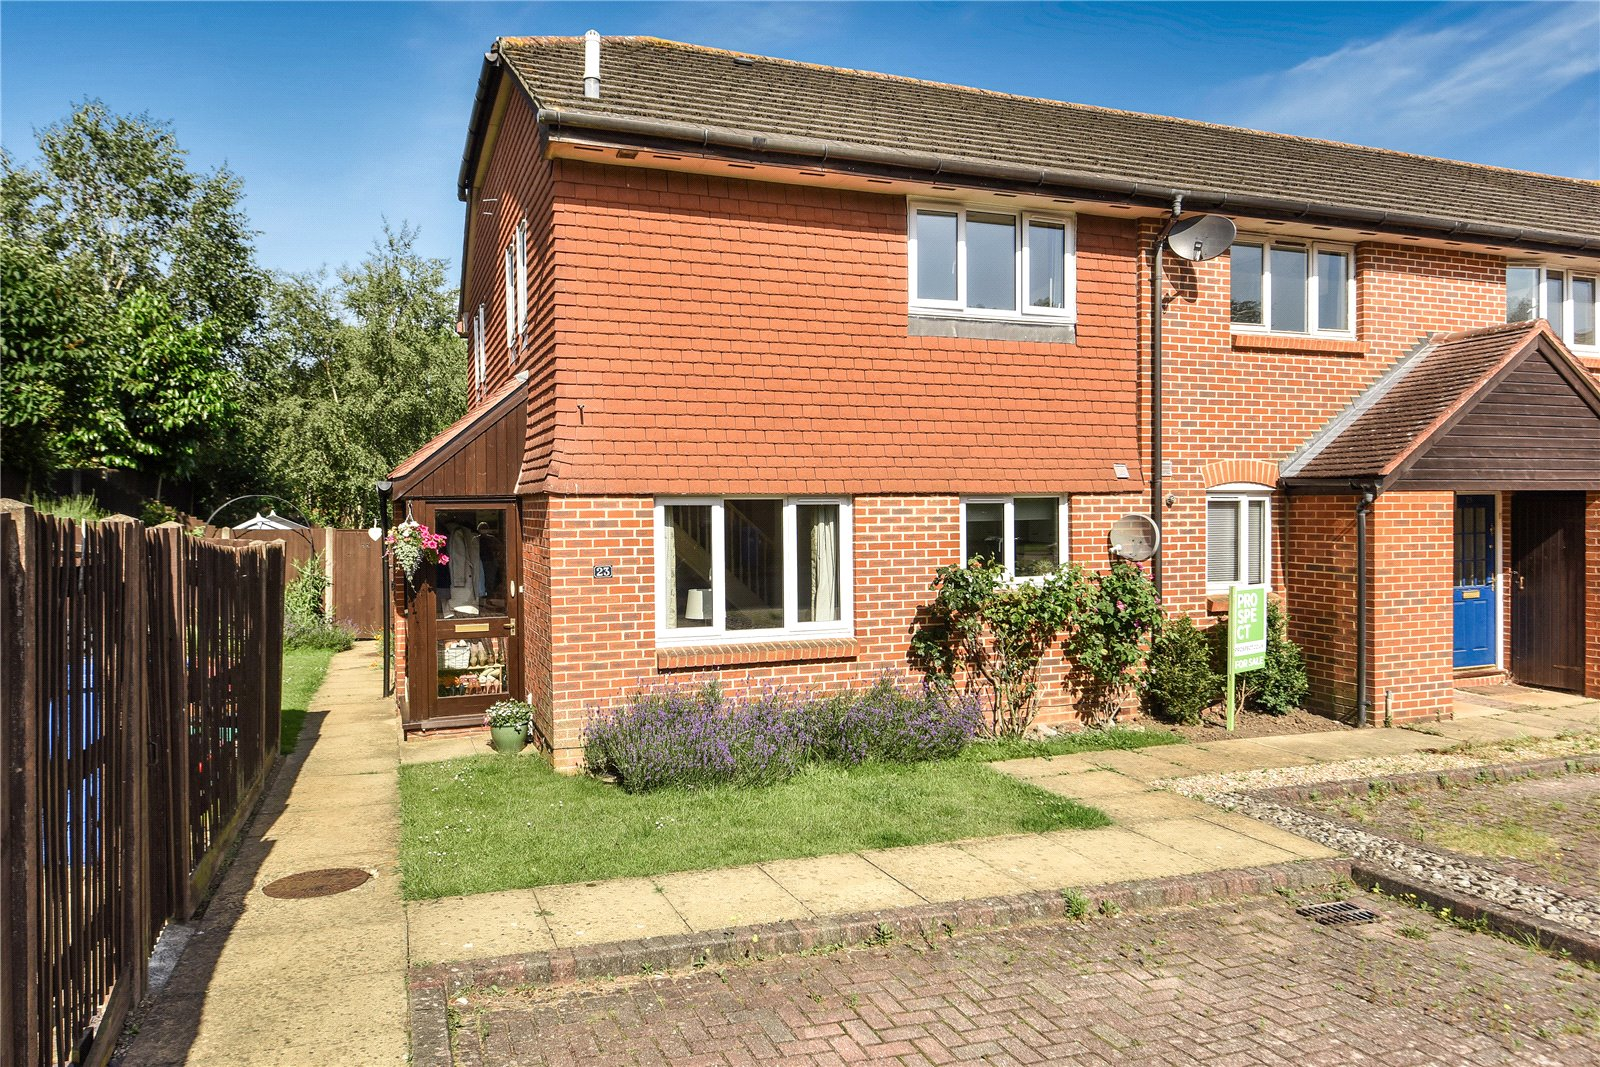 1 Bedroom Terraced House for sale in Portia Grove, Warfield, Bracknell, Berkshire, RG42